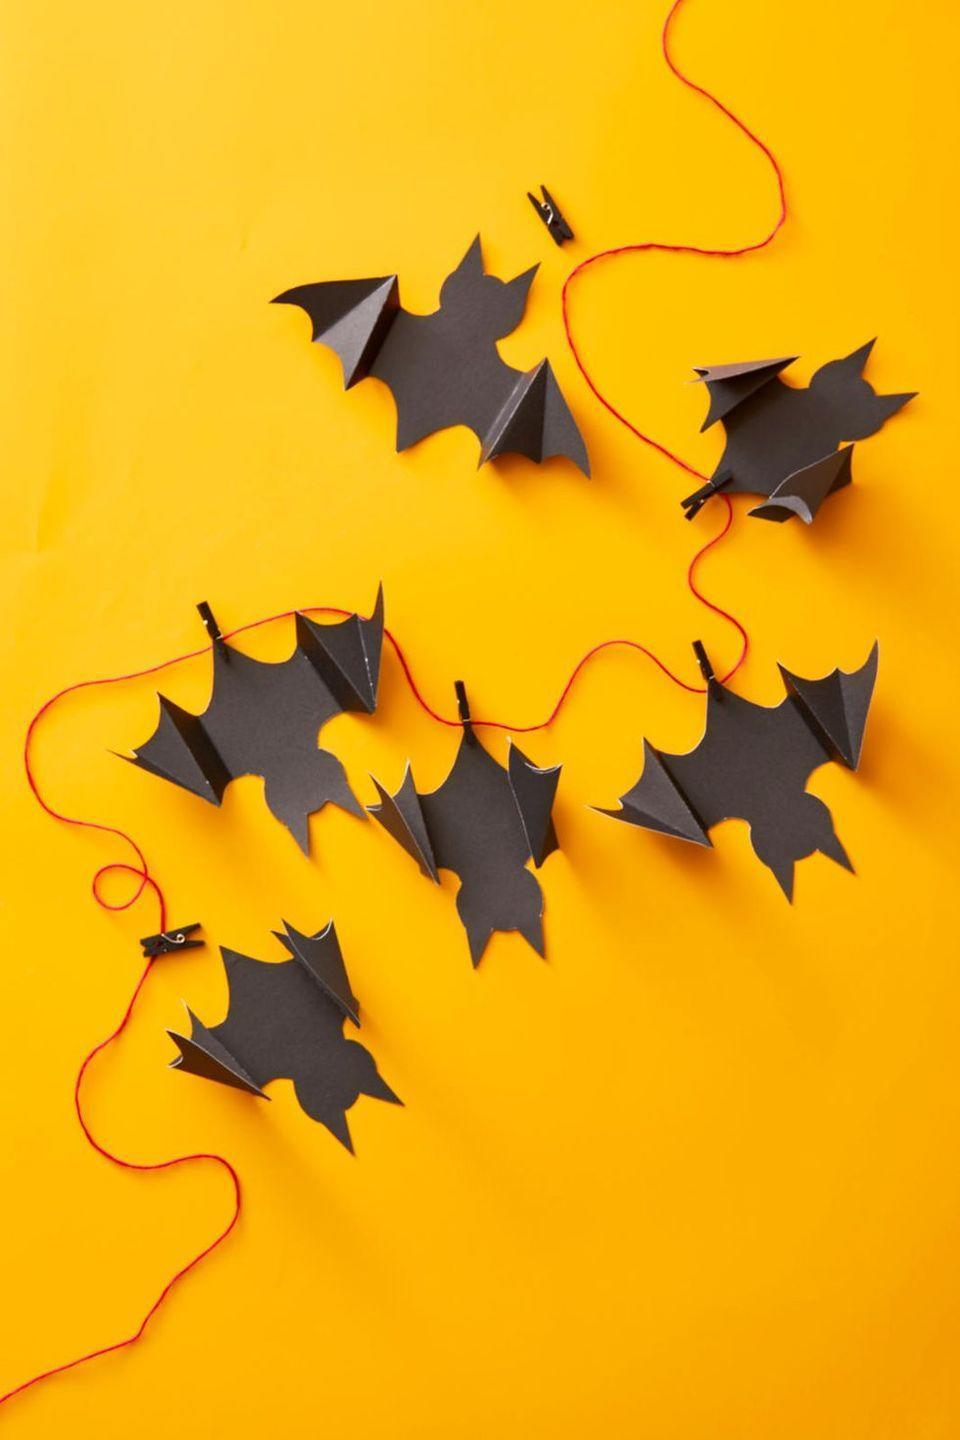 "<p>Give their bedroom a holiday makeover by draping this paper garland over their door frame, windows, or shelves. To make, download <strong><a href=""https://hmg-prod.s3.amazonaws.com/files/ghkhalloween-batgarland-1564764043.pdf"" rel=""nofollow noopener"" target=""_blank"" data-ylk=""slk:this bat stencil"" class=""link rapid-noclick-resp"">this bat stencil</a></strong>, then trace the shape onto a piece of black craft paper and cut out the bat with scissors. Place the stencil back atop each critter you create and use a bone folder to make creases along the dotted lines on the stencil. Fold the creases opposite ways on each wing to make the wings 3D. Attach each bat to a long piece of string with tiny black clothespins.</p>"